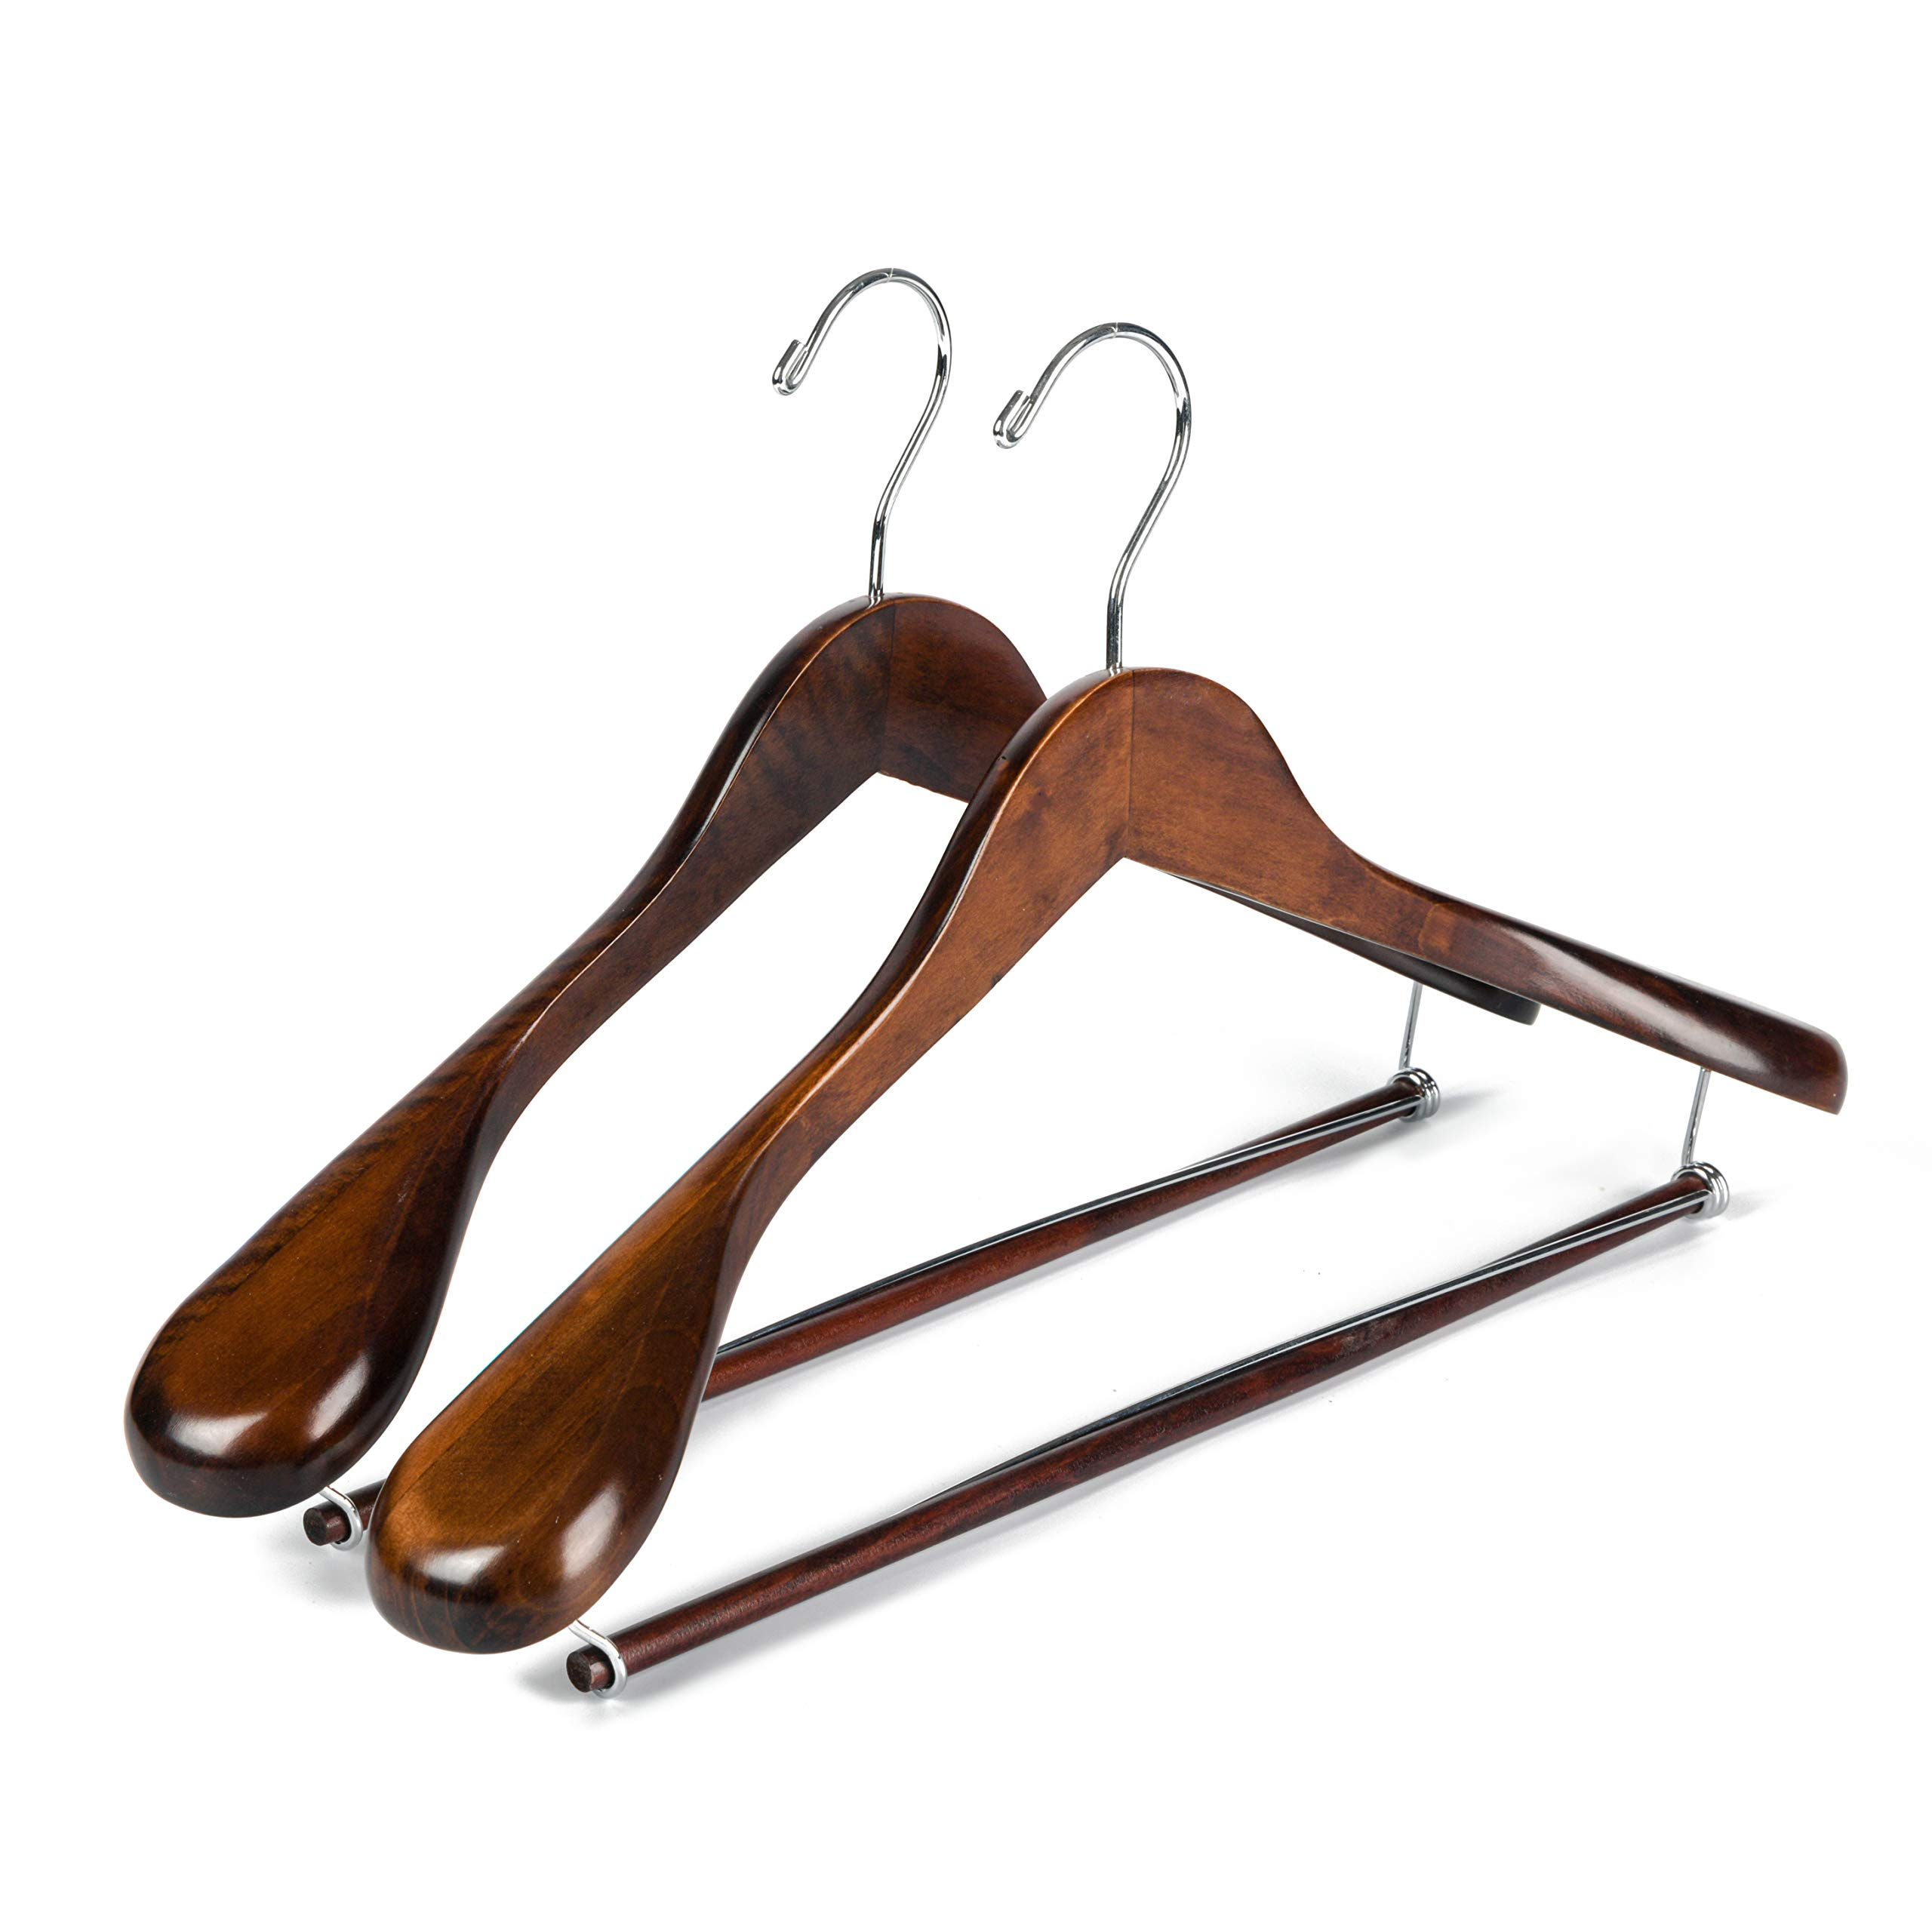 Quality Luxury Wooden Suit Hangers Wide Wood Hanger for Coats and Pants with Locking Bar Great for Travelers Heavy Duty (2, Retro)